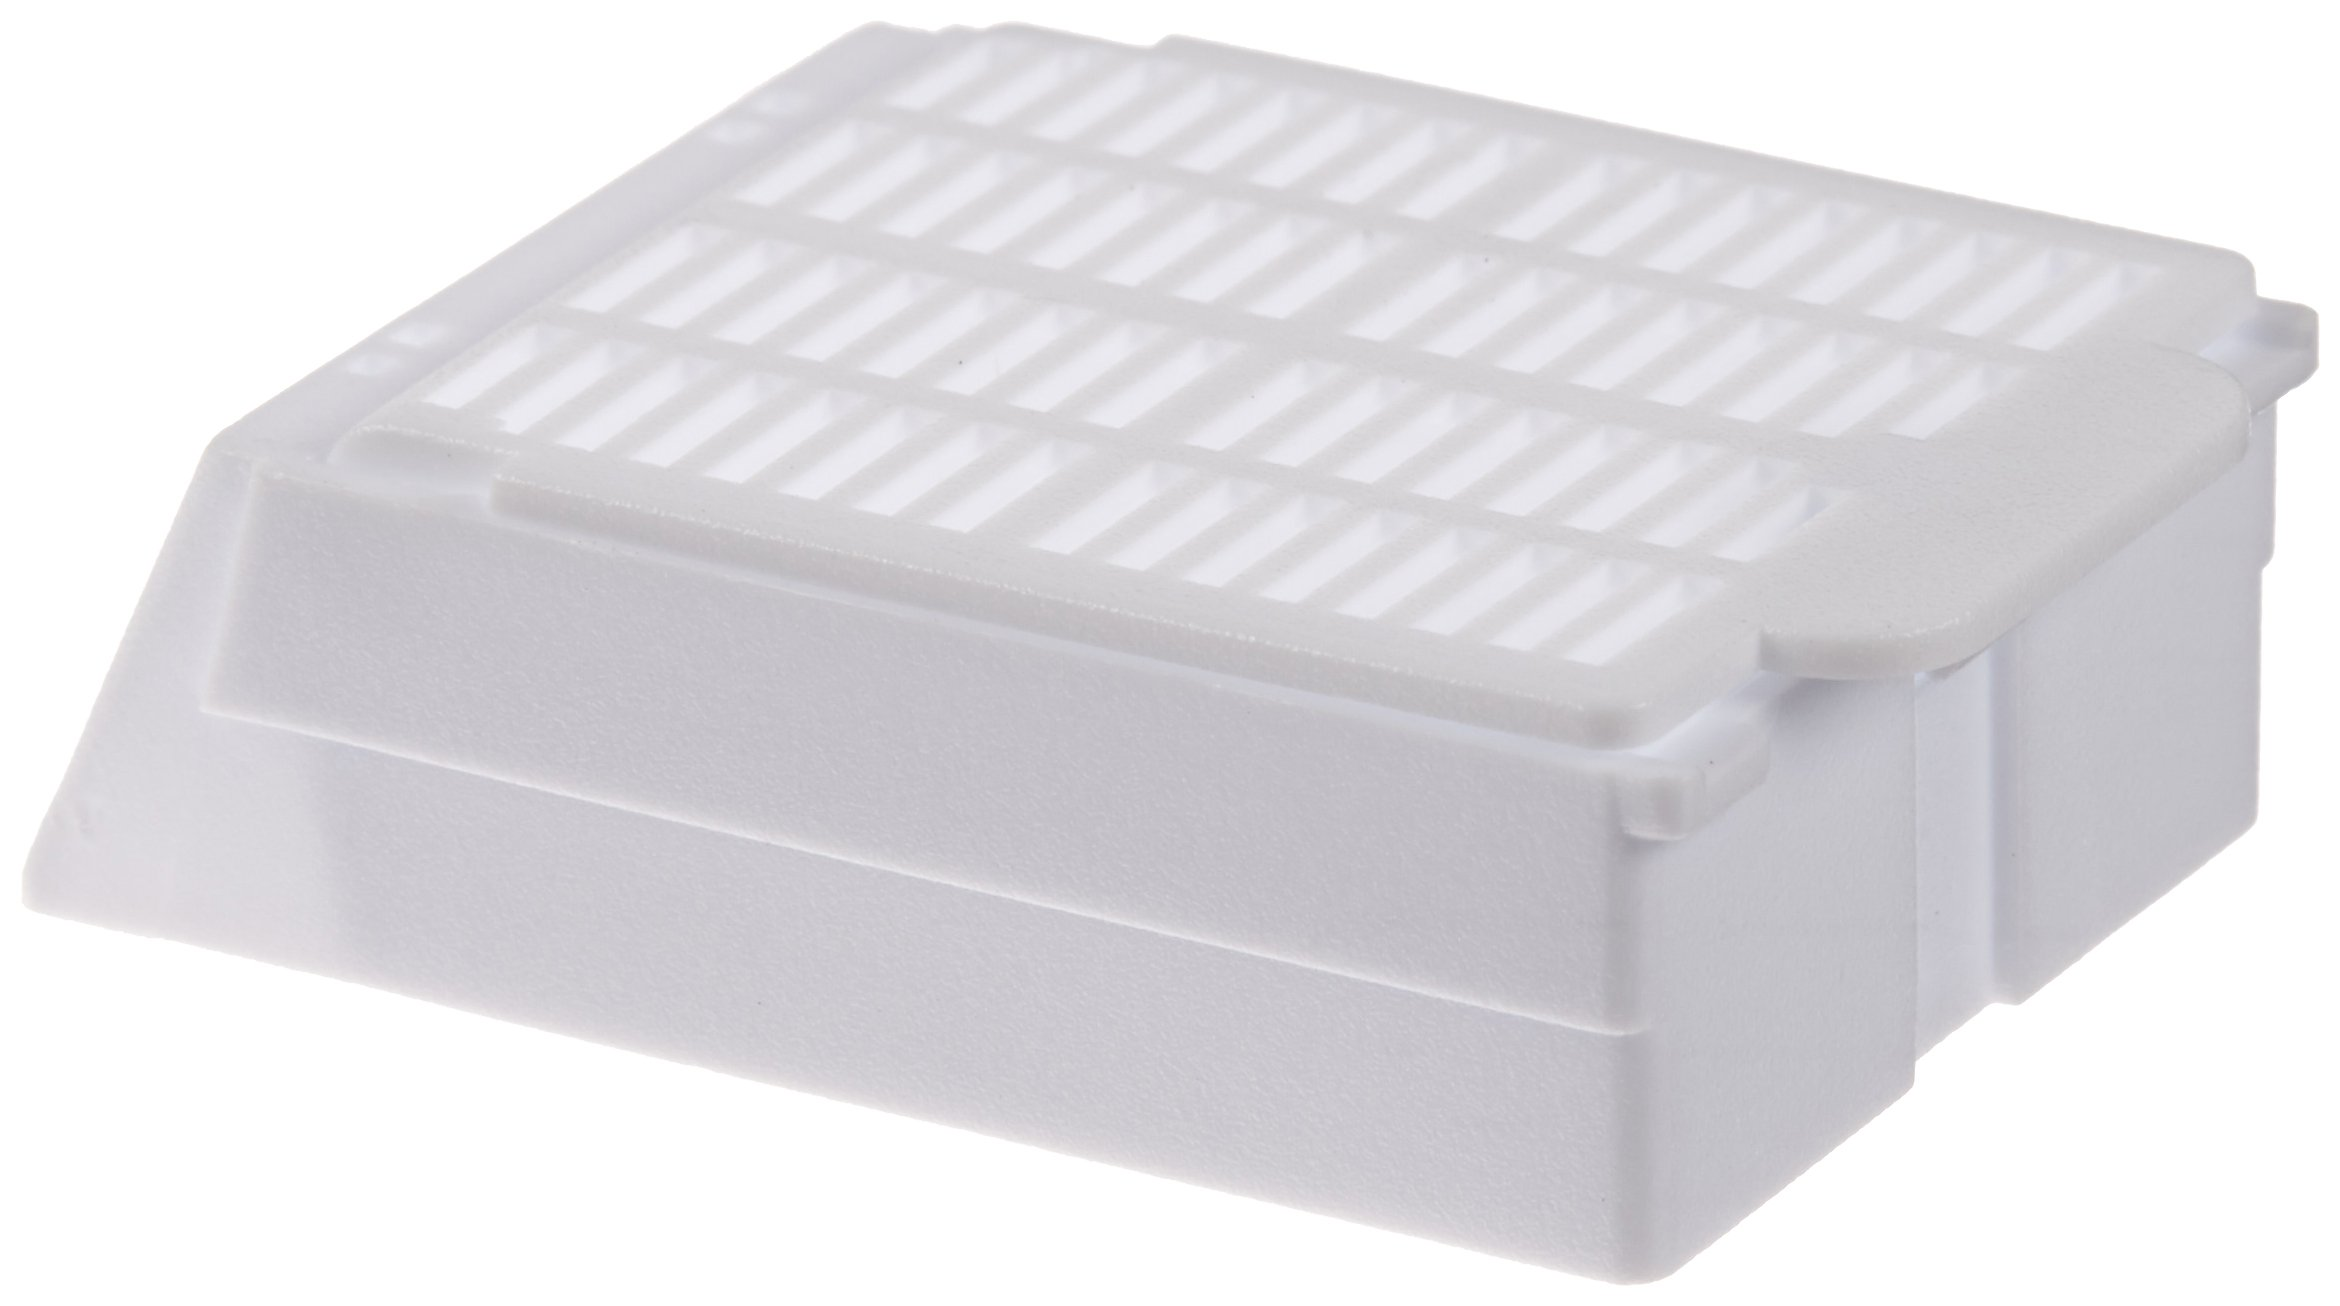 Simport Macrosette M512 Acetal Tissue Processing/Embedding Cassette with Lid, White (Case of 750)